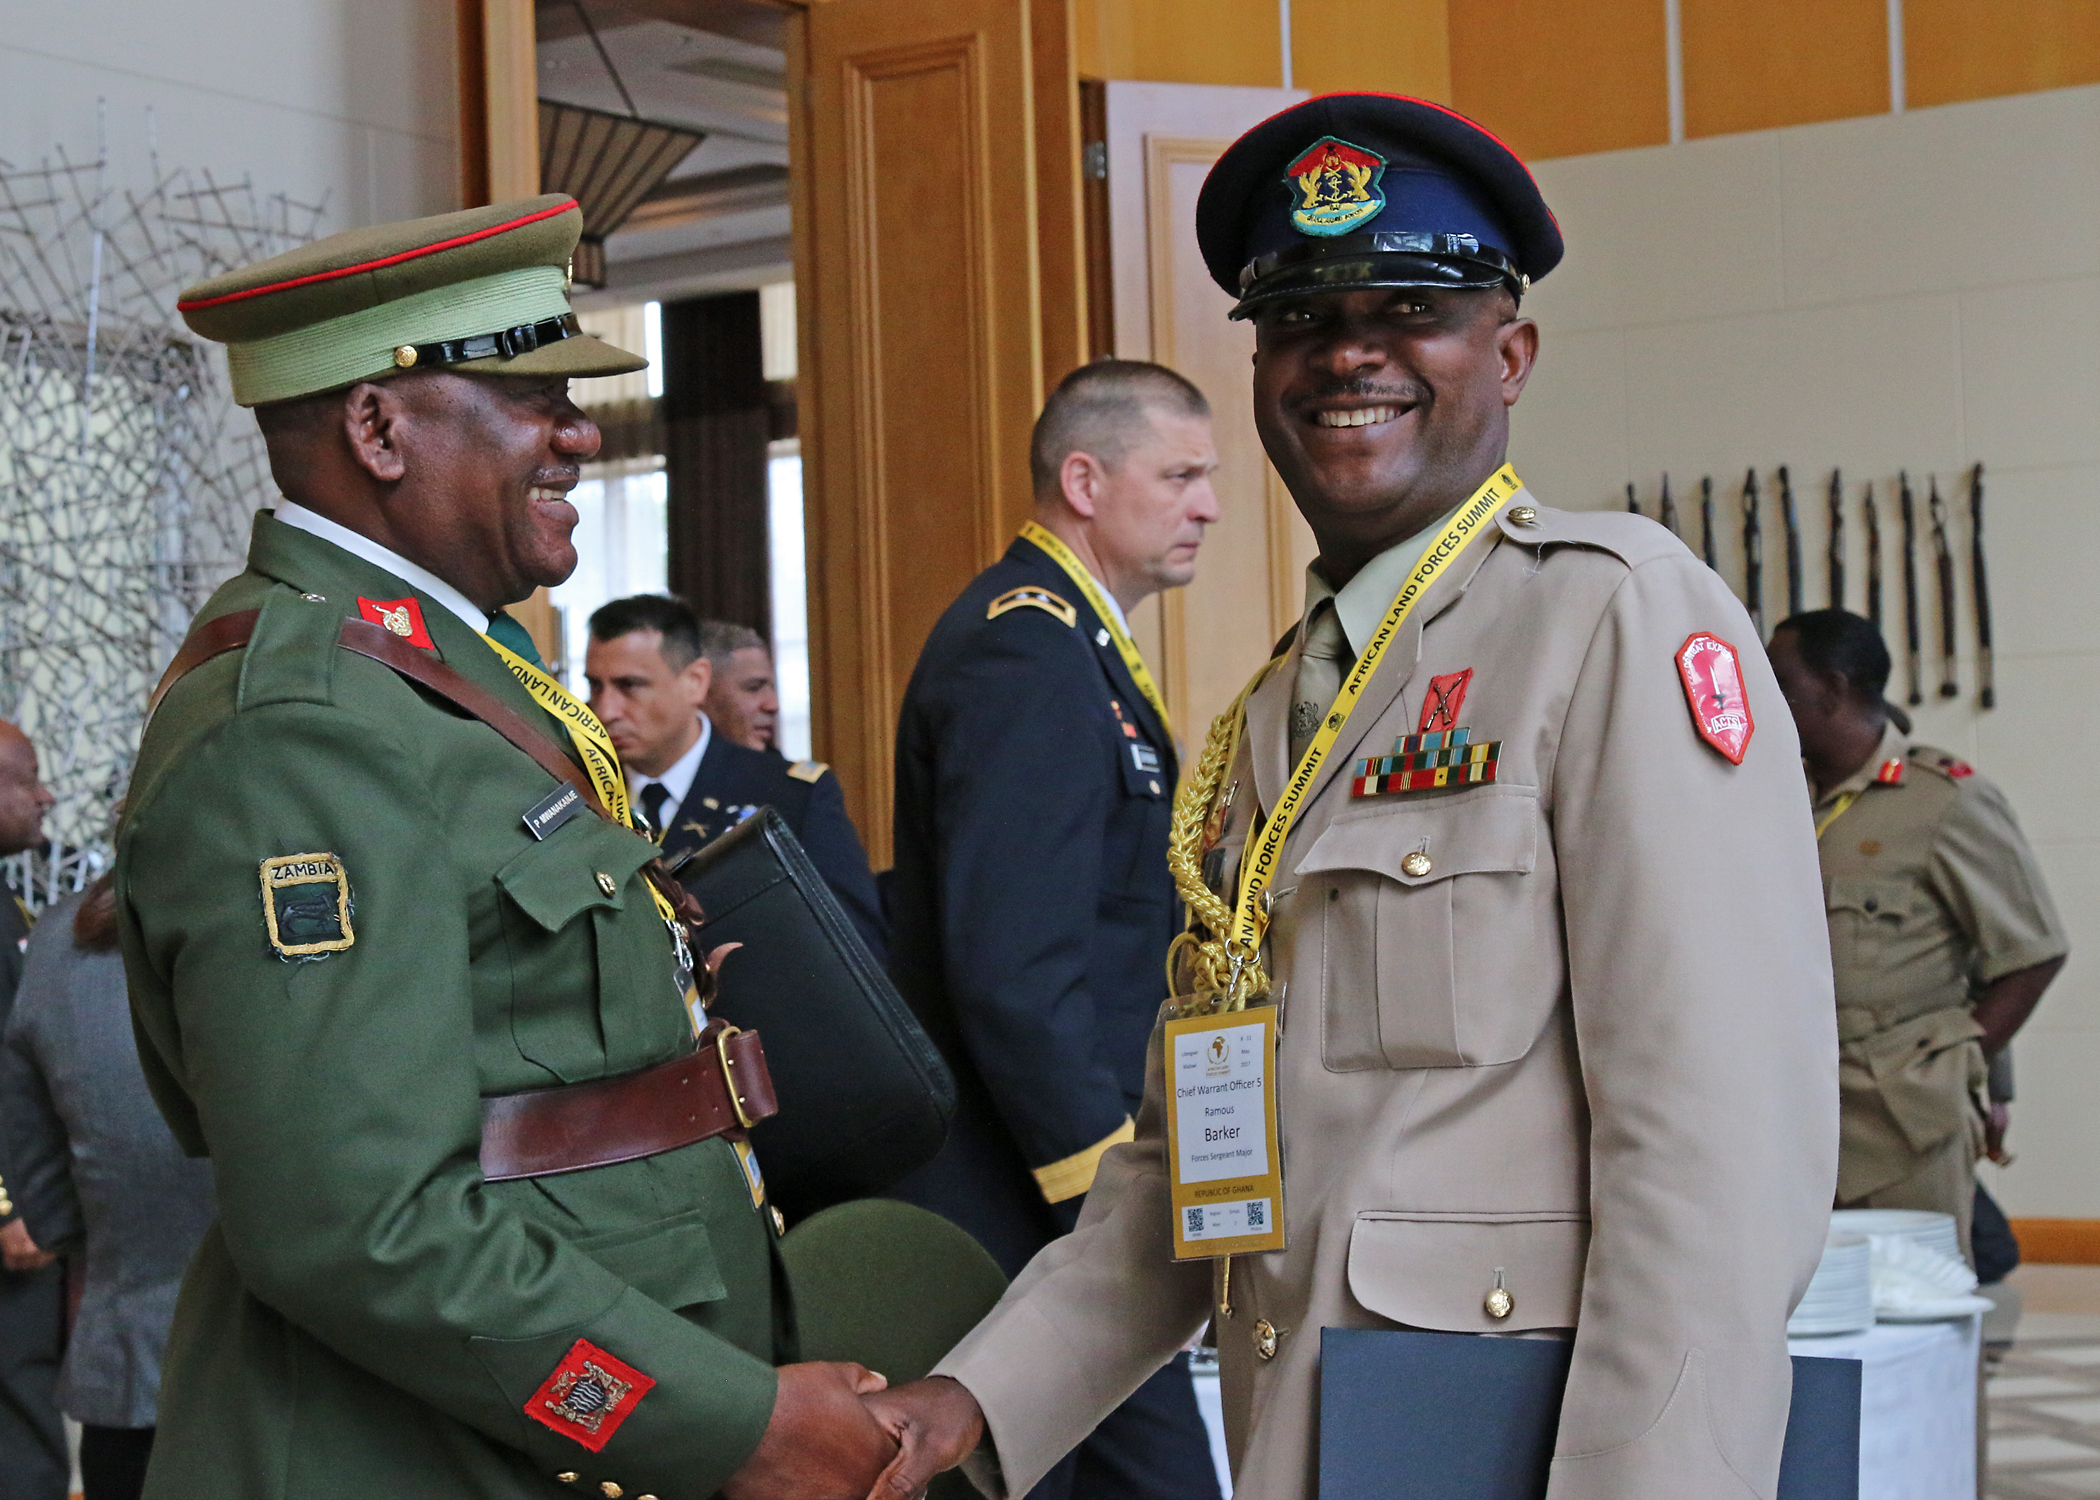 Warrant Officer 1 Patson Mwanakanje (left), a member of the Zambian Army headquarters, and Chief Warrant Officer 5 Ramous Barker, Republic of Ghana Forces Sergeant Major, socialize during the African Land Forces Summit, in Lilongwe, Malawi, May 11, 2017. ALFS is an annual, weeklong seminar bringing together land force chiefs from across Africa for candid dialog to discuss and develop cooperative solutions to regional and transregional challenges and threats. (U.S. Army photo by Sgt. Paige Behringer/Released)